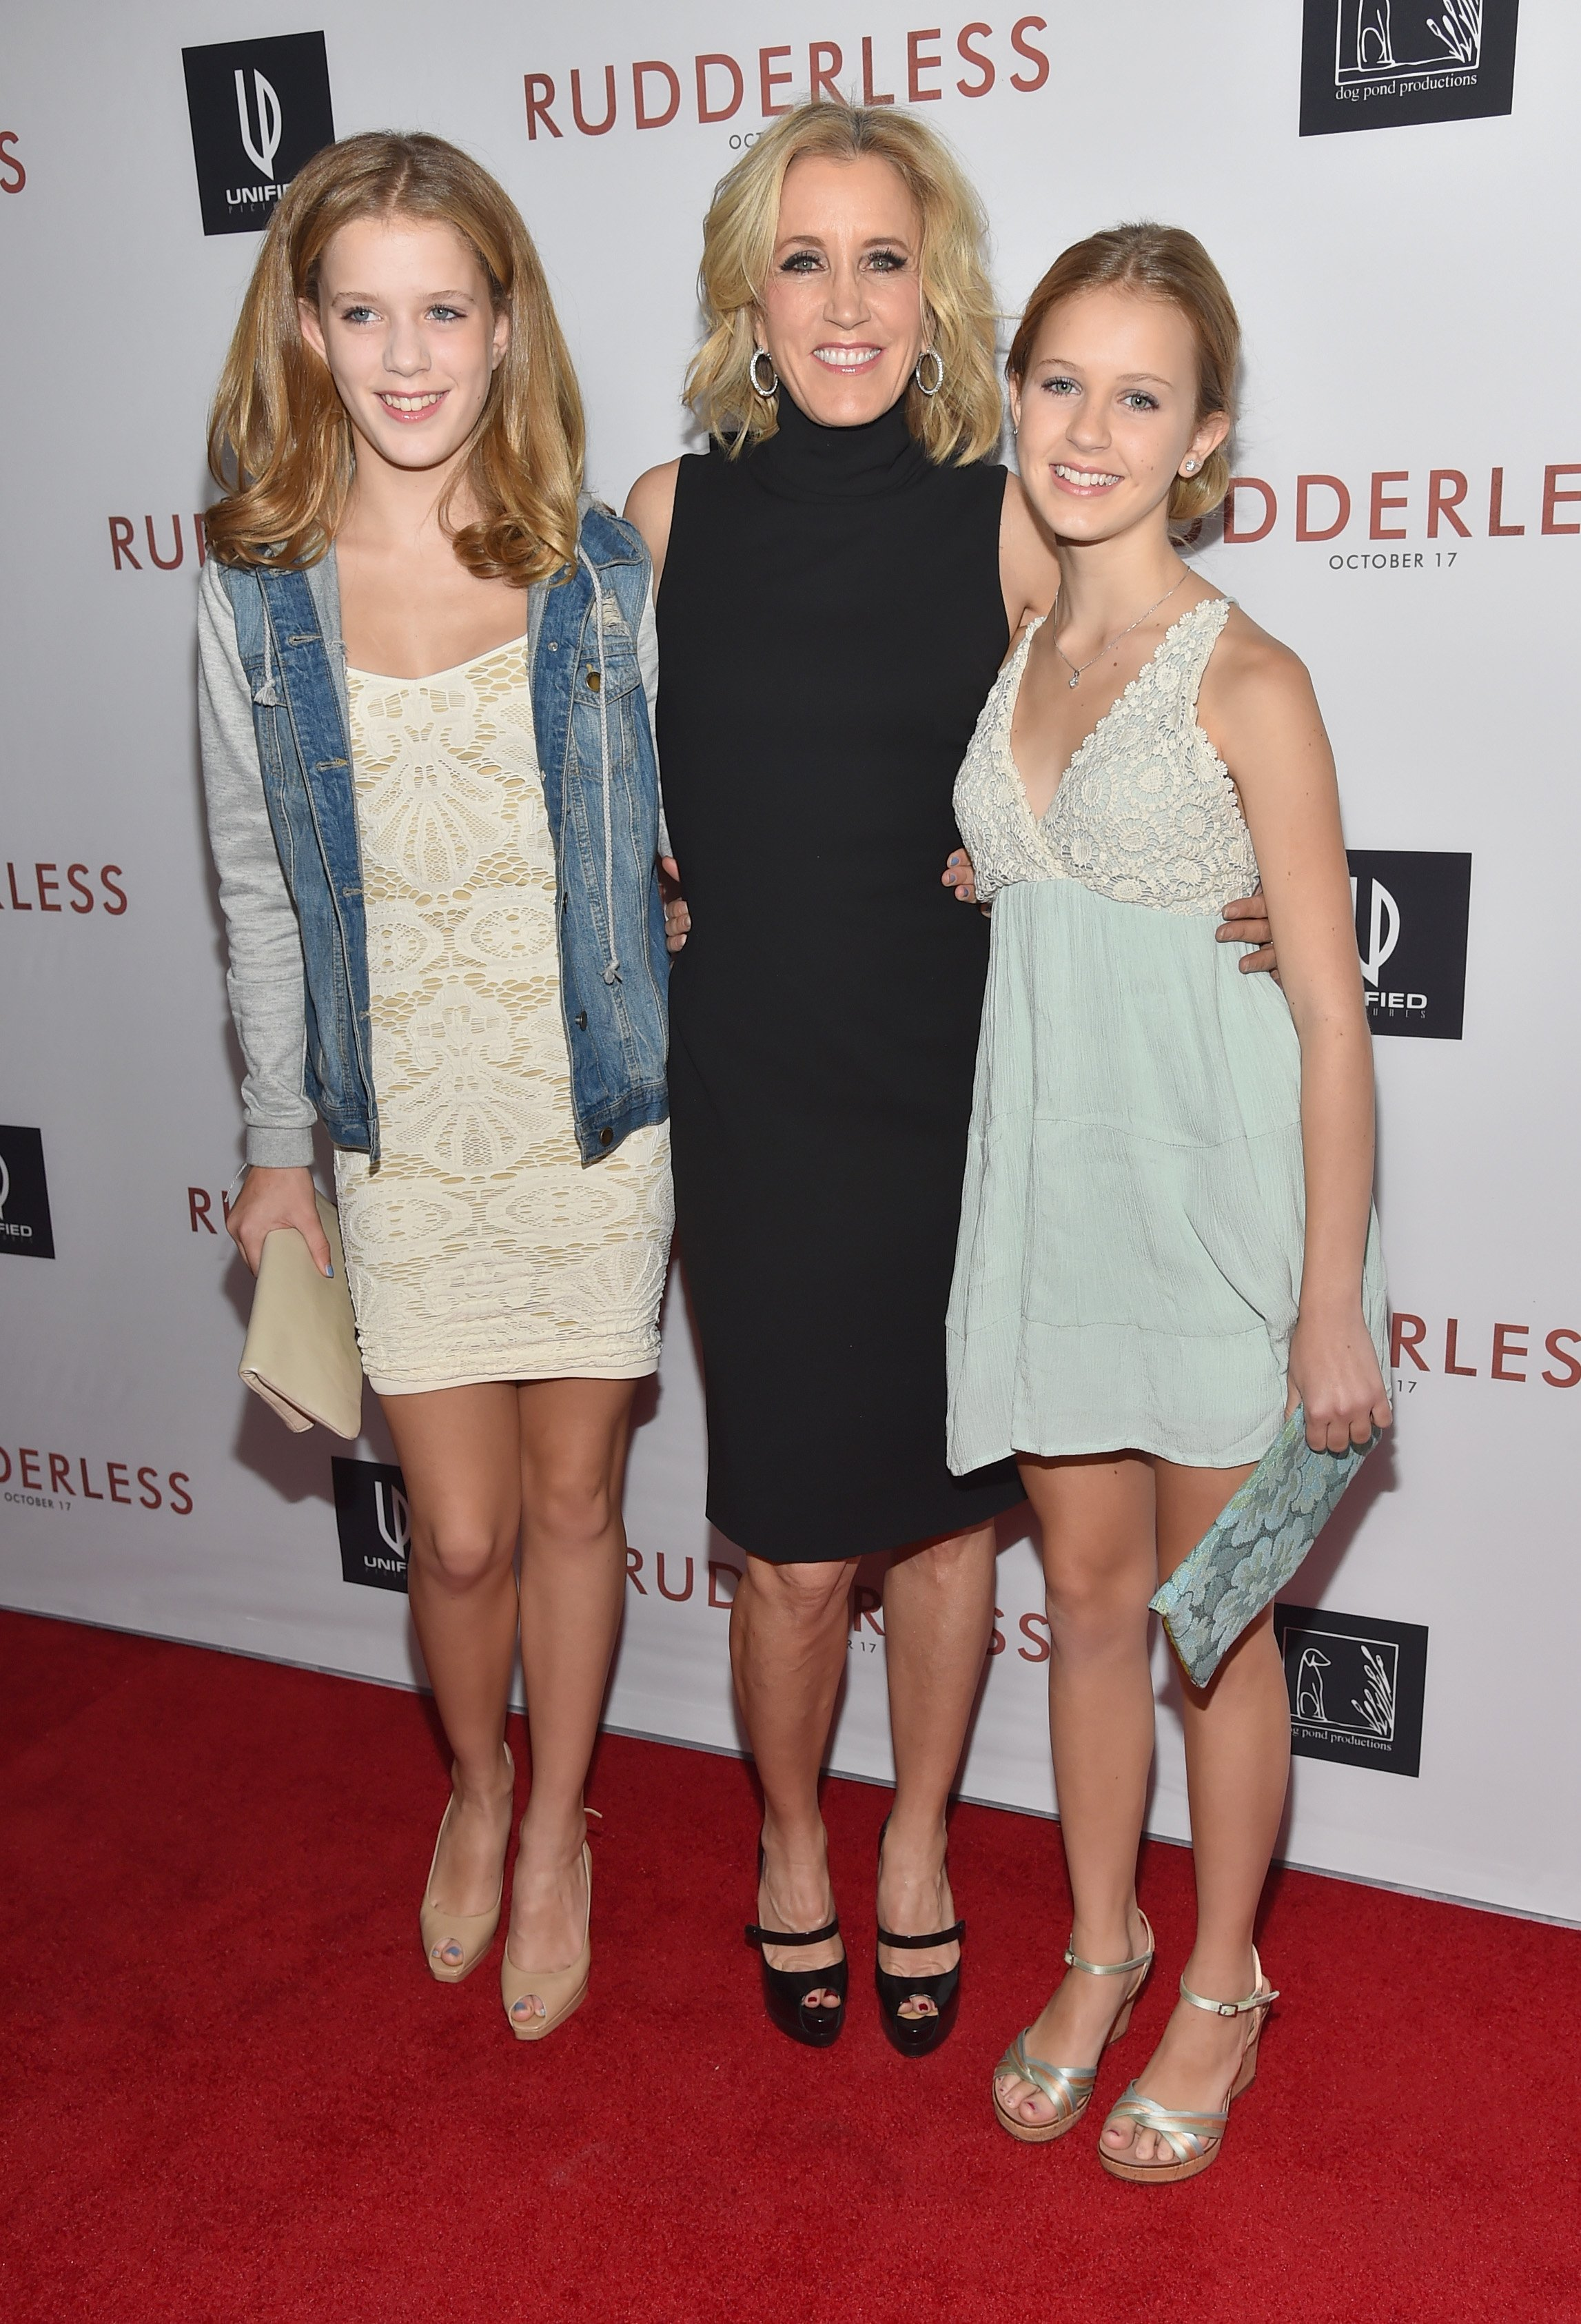 """Sophia Macy, Felicity Huffman and Grace Macy at Screening Of """"Rudderless,"""" October 7, 2014 